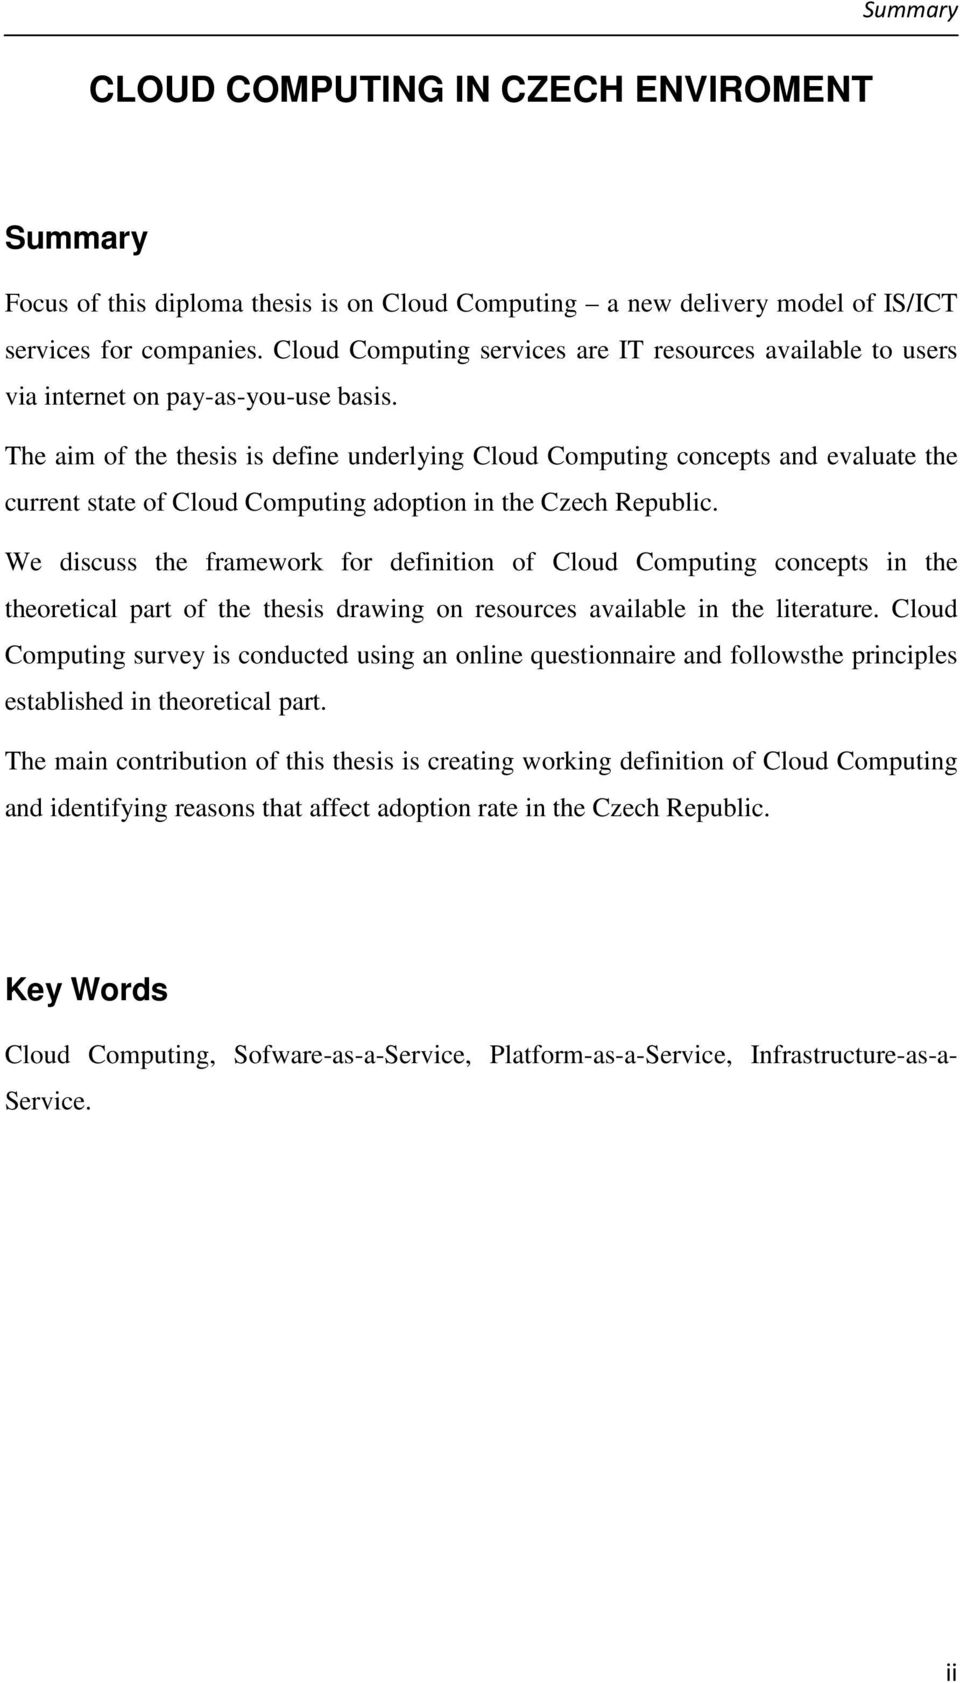 The aim of the thesis is define underlying Cloud Computing concepts and evaluate the current state of Cloud Computing adoption in the Czech Republic.